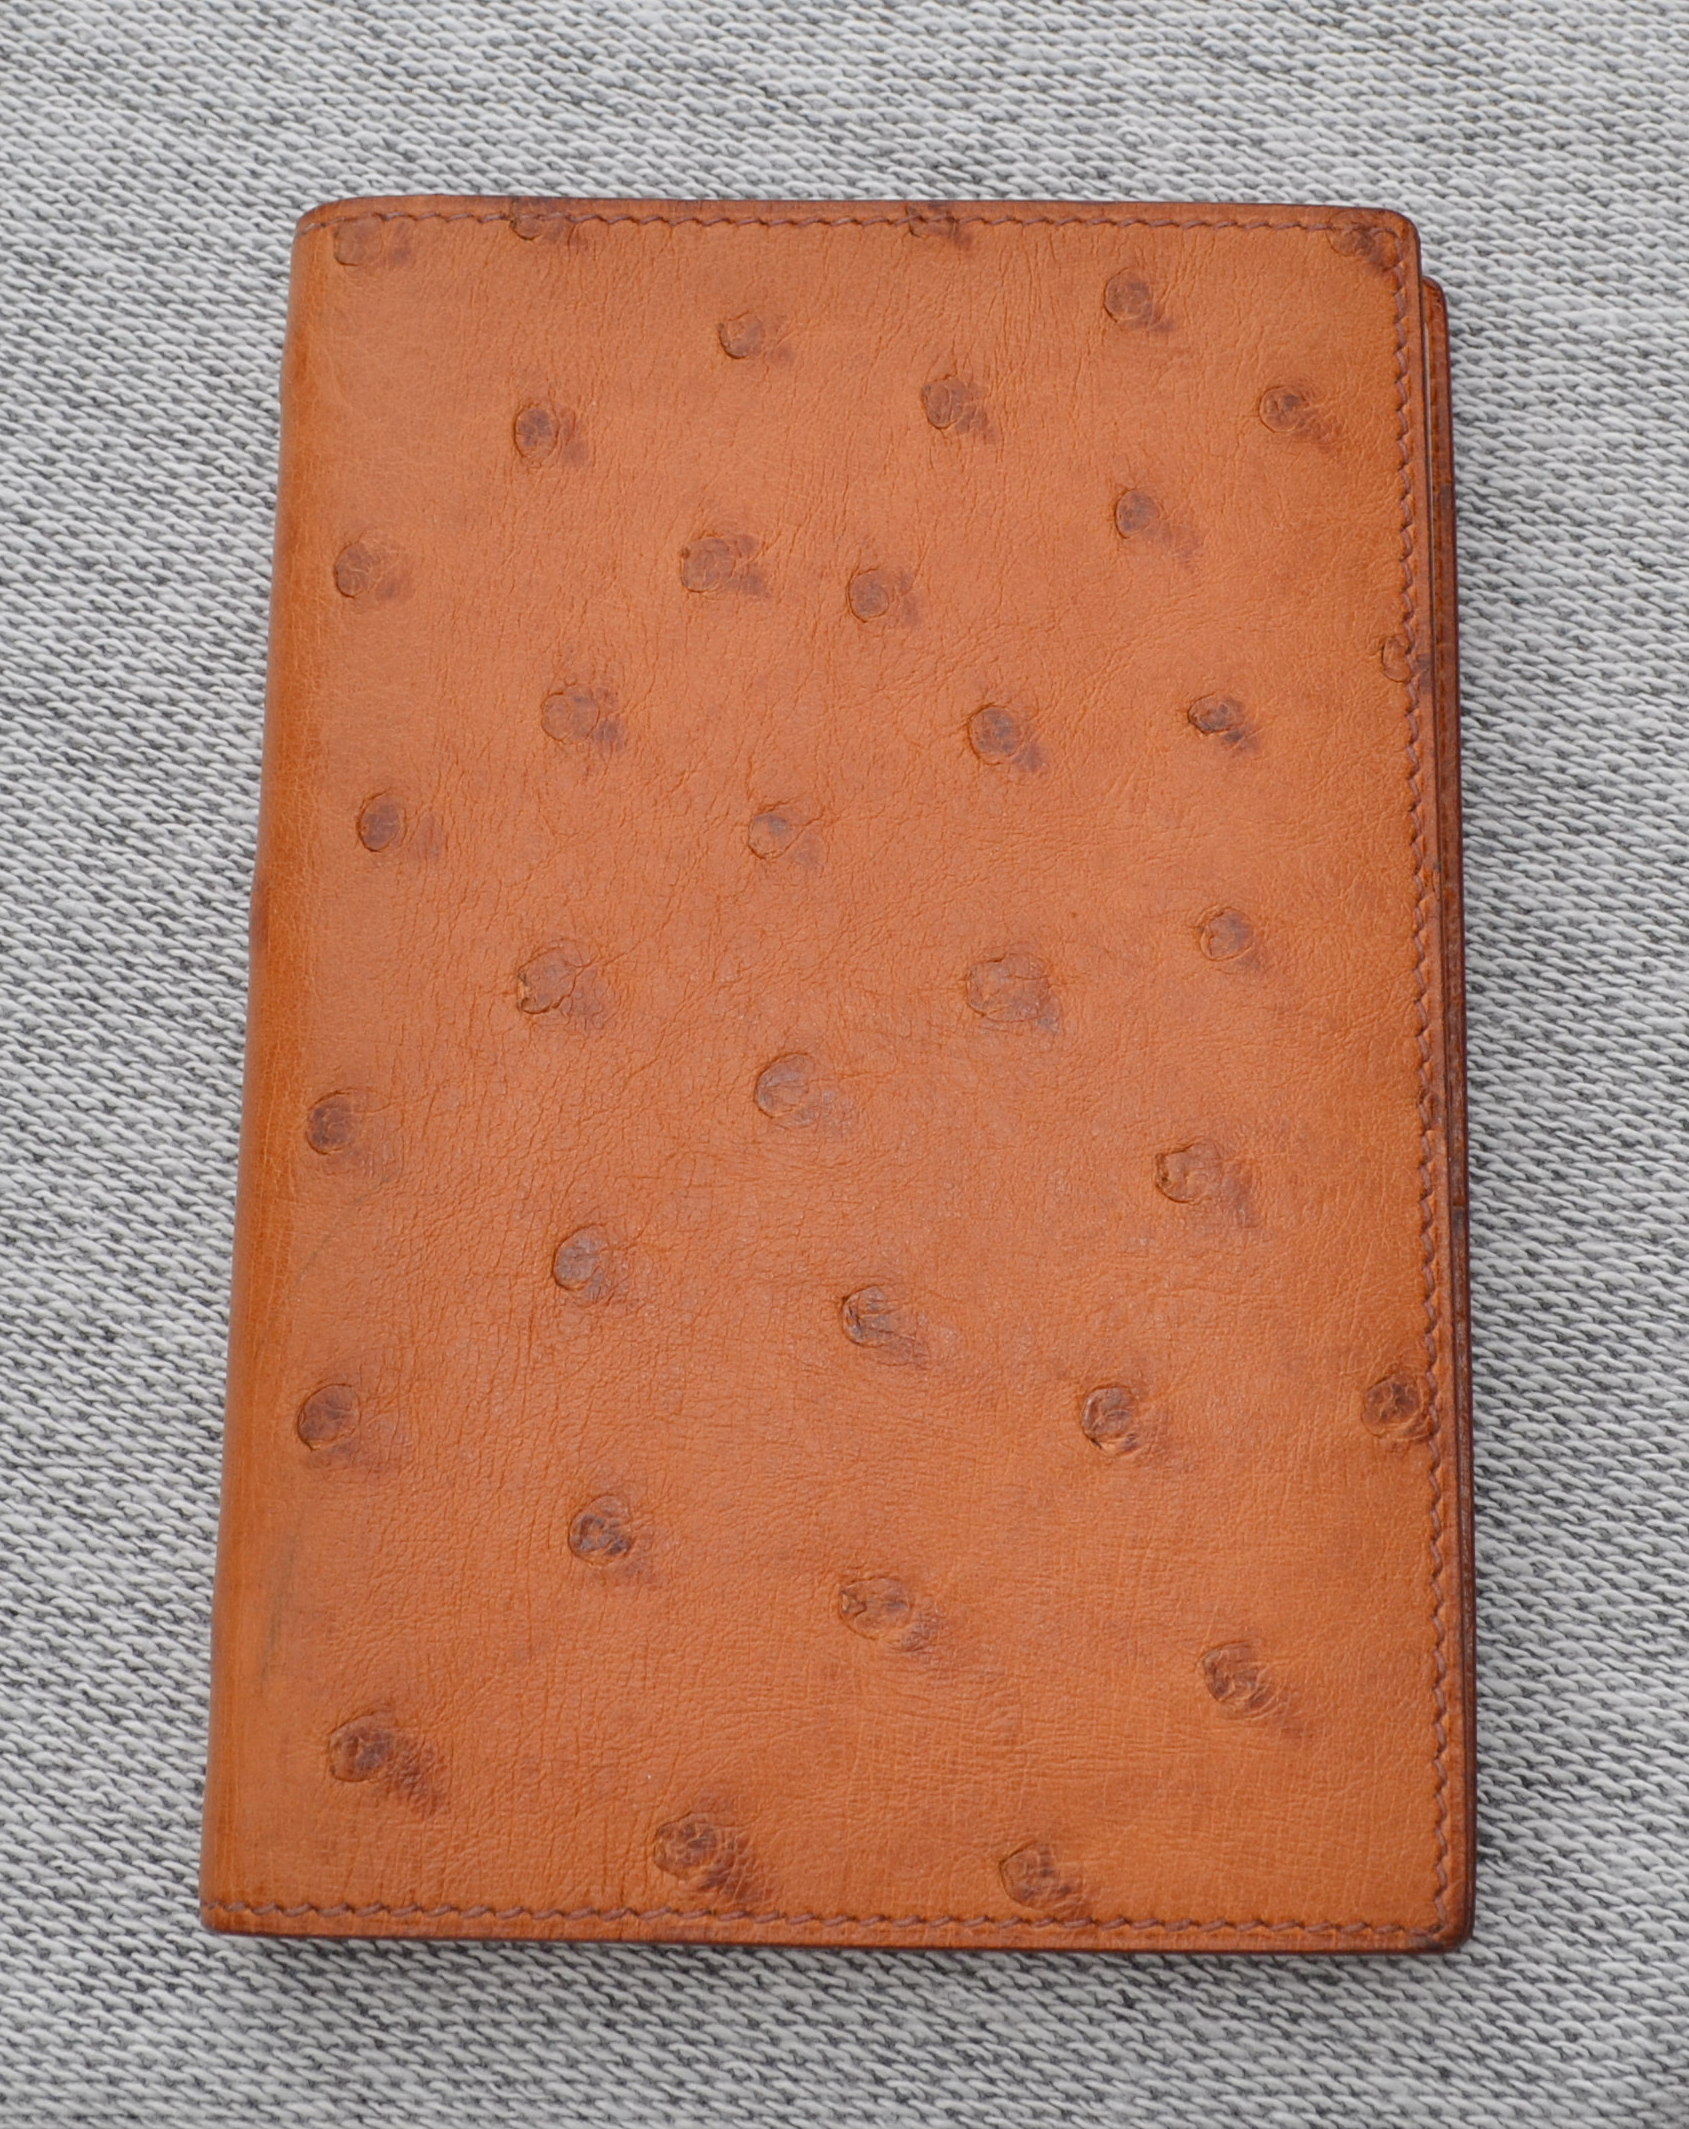 hermes birkin bag cost - Herm��s Ostrich GM Notebook Agenda Cover Review �C THE UNROYAL WARRANT